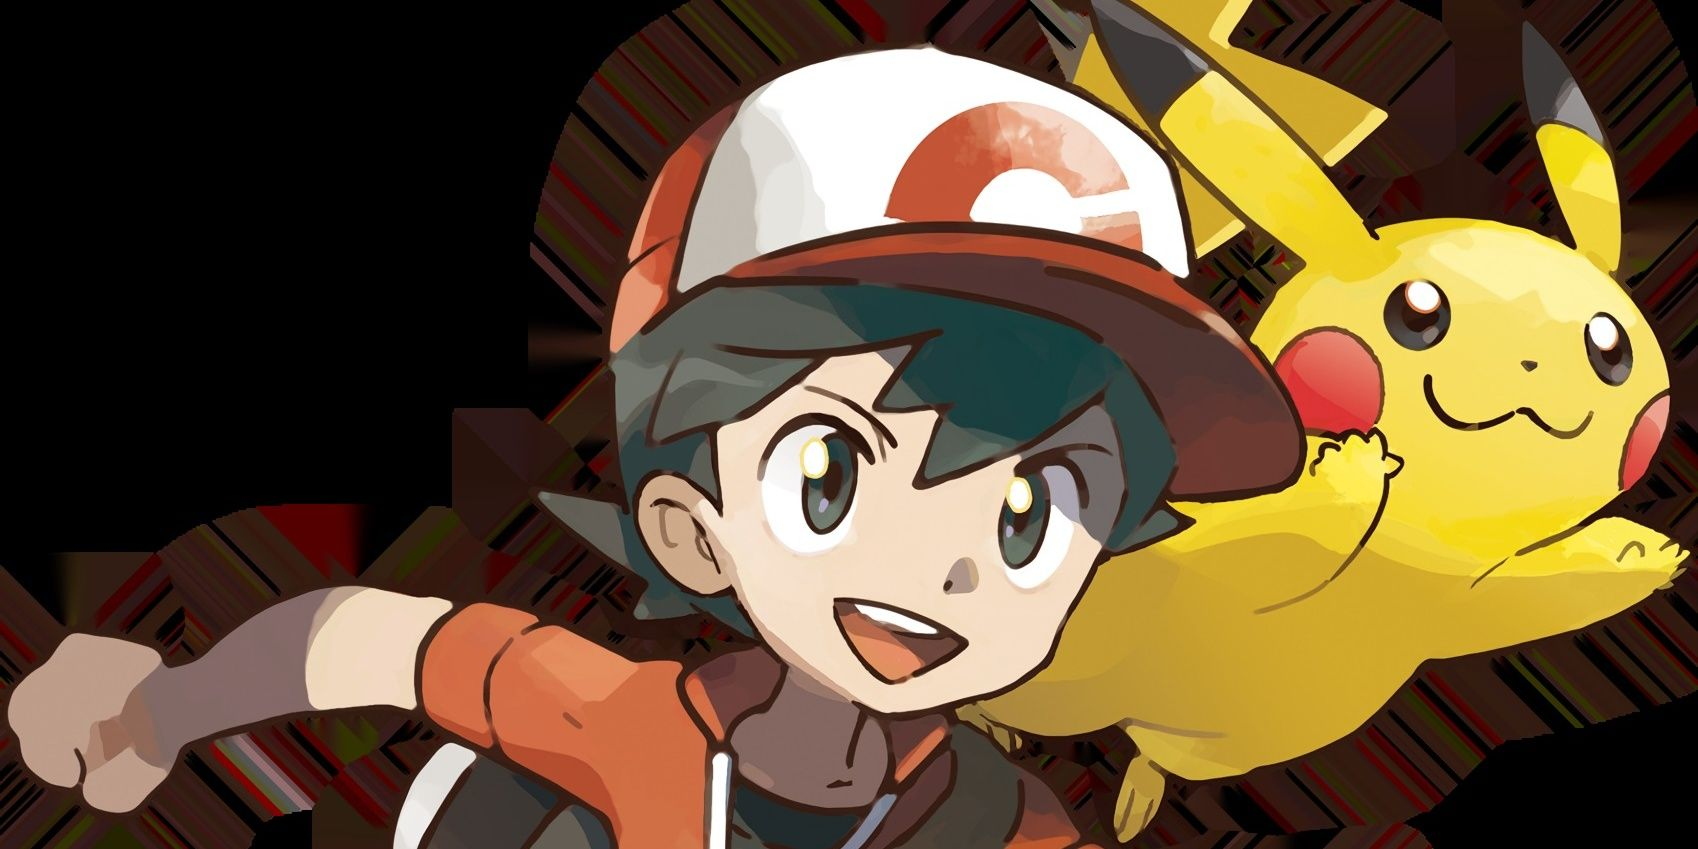 Pokémon: Every Main Characters Ranked, According To Strength